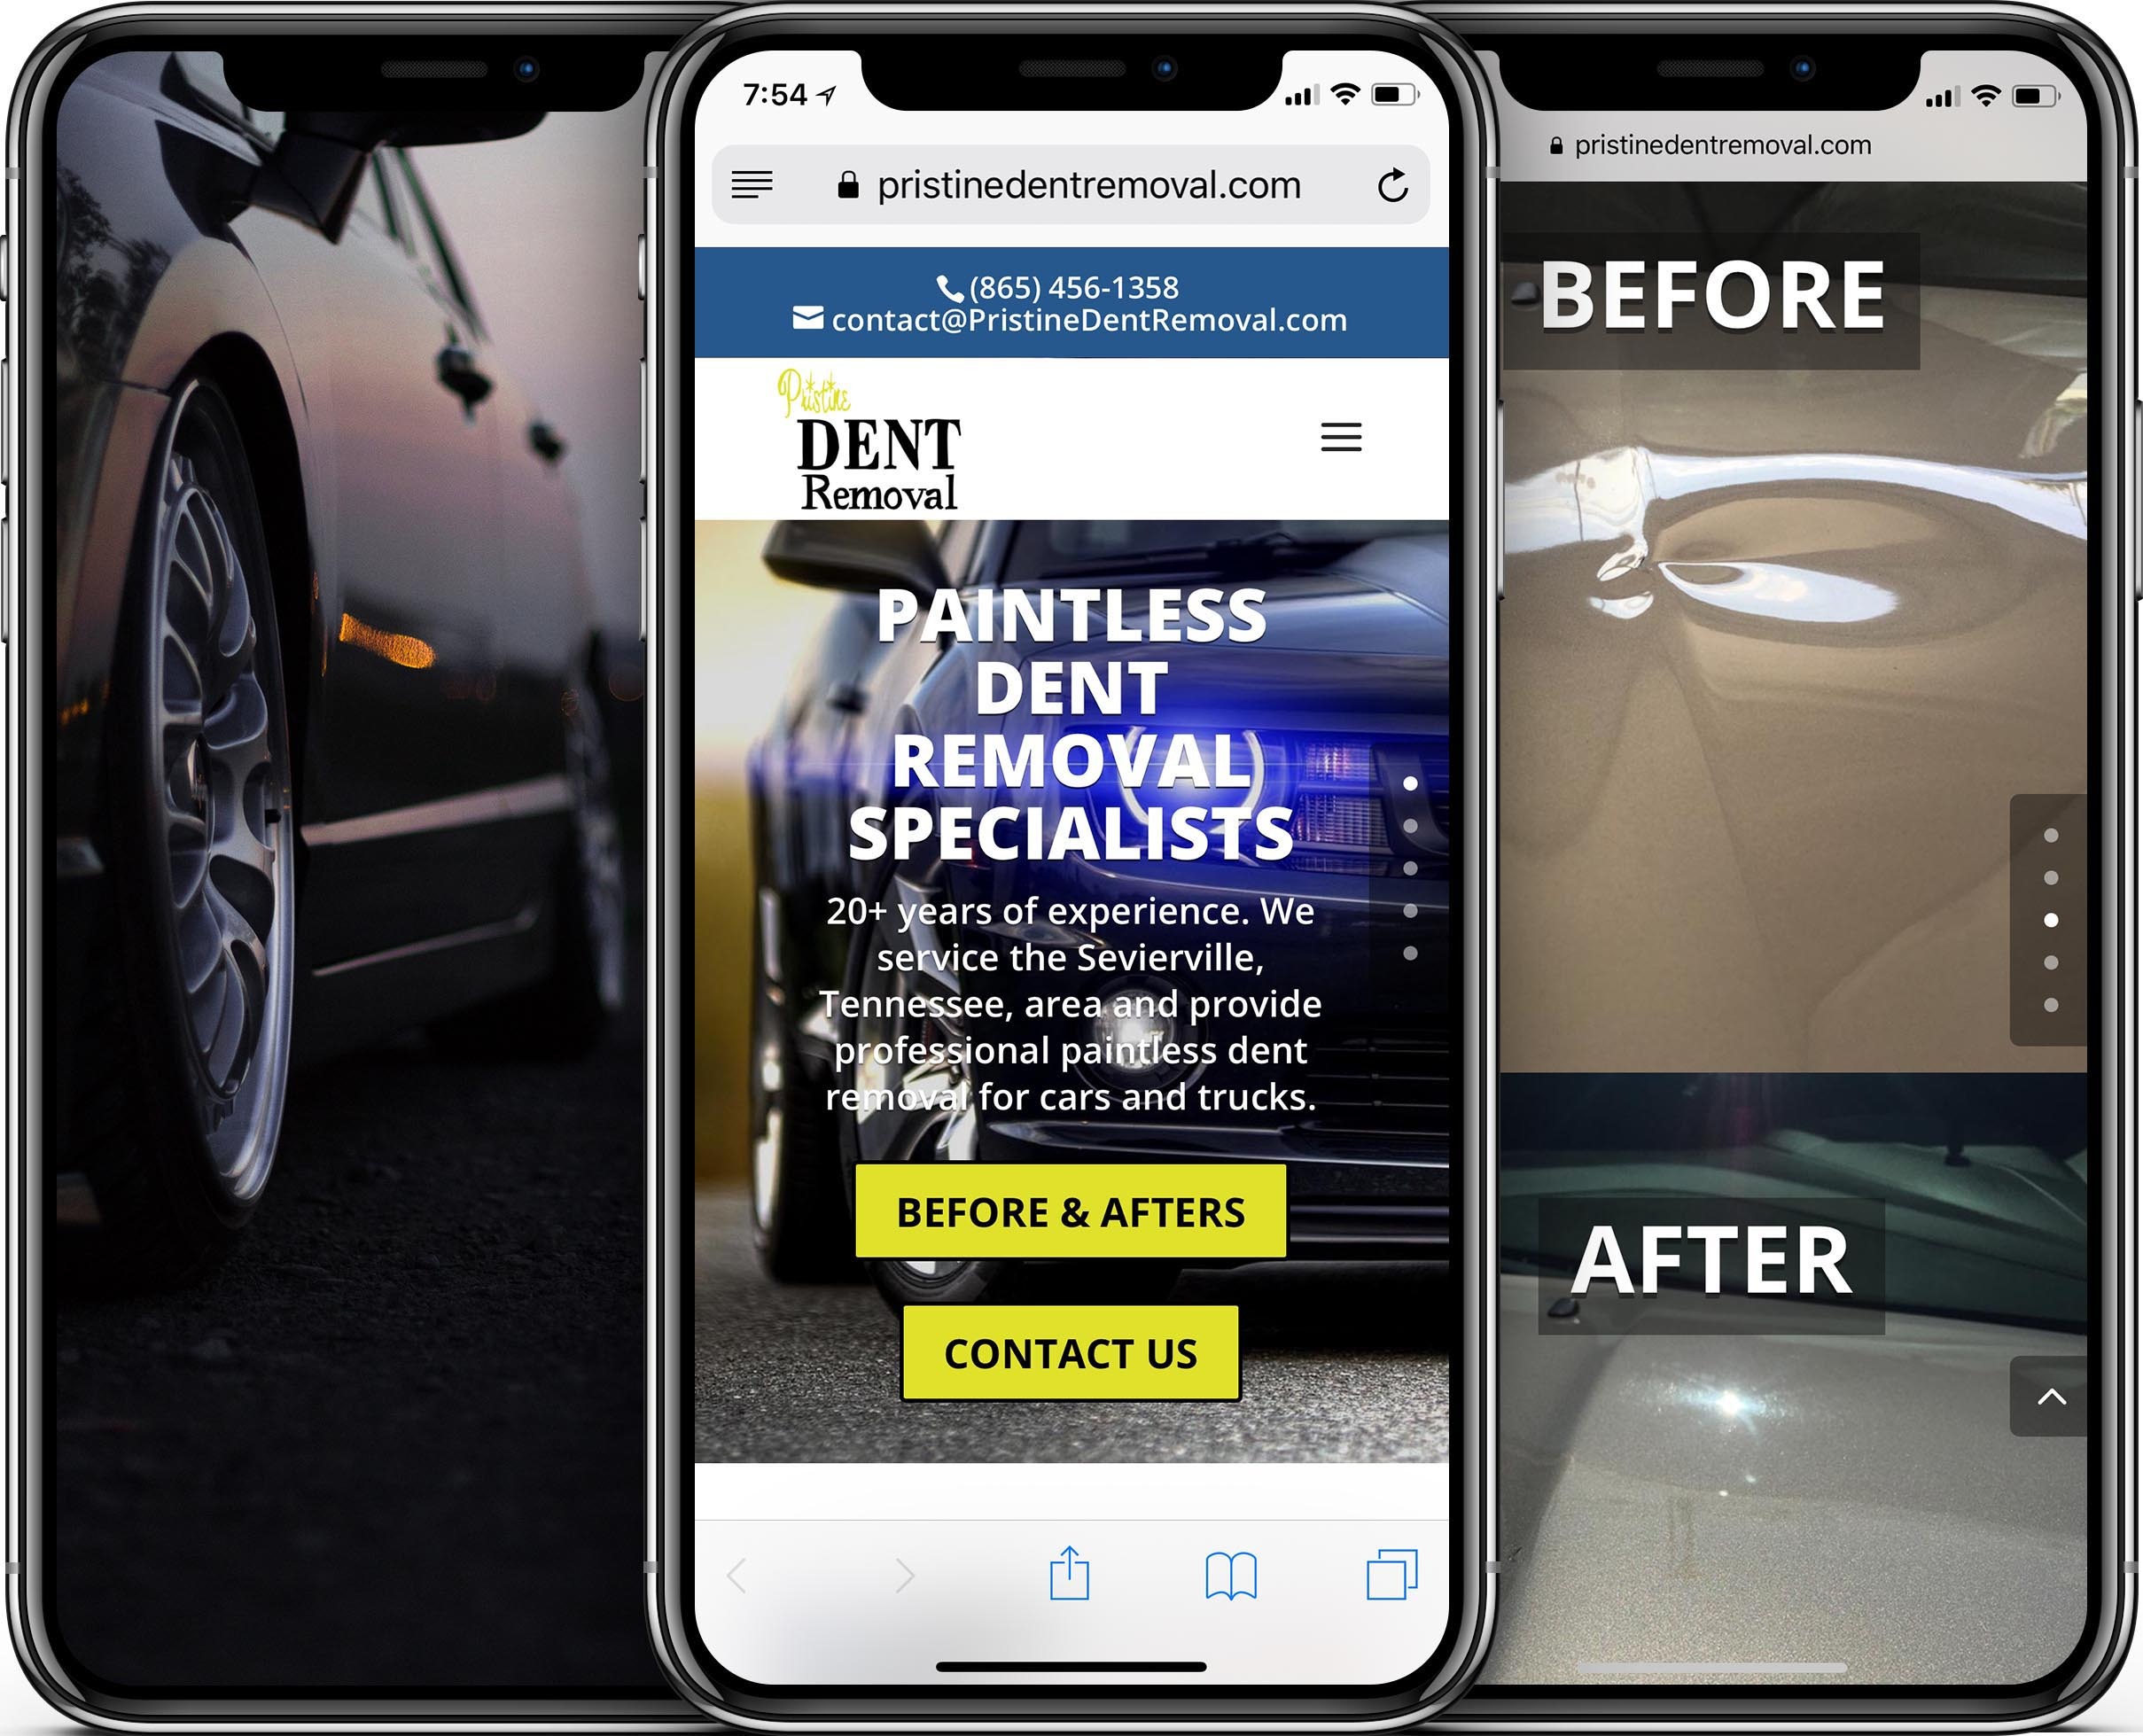 Pristine Dent Removal Mobile-Friendly Web Design